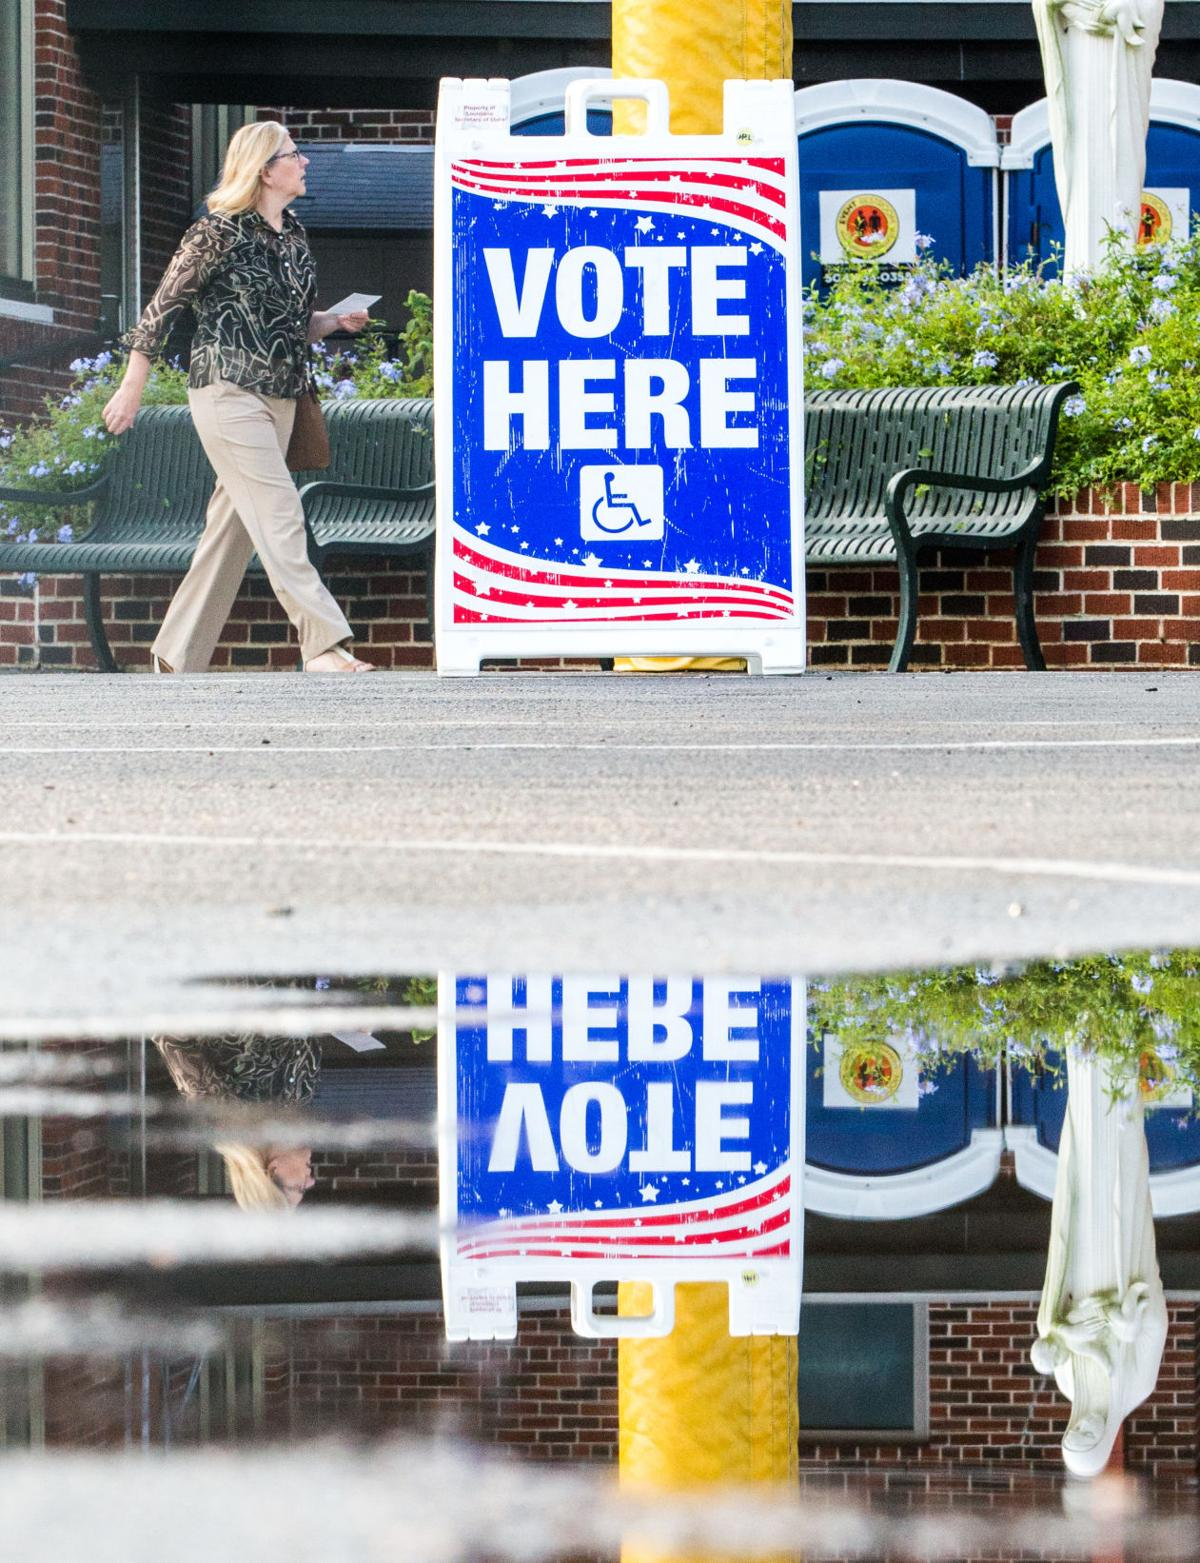 NO.electionday.110718.10